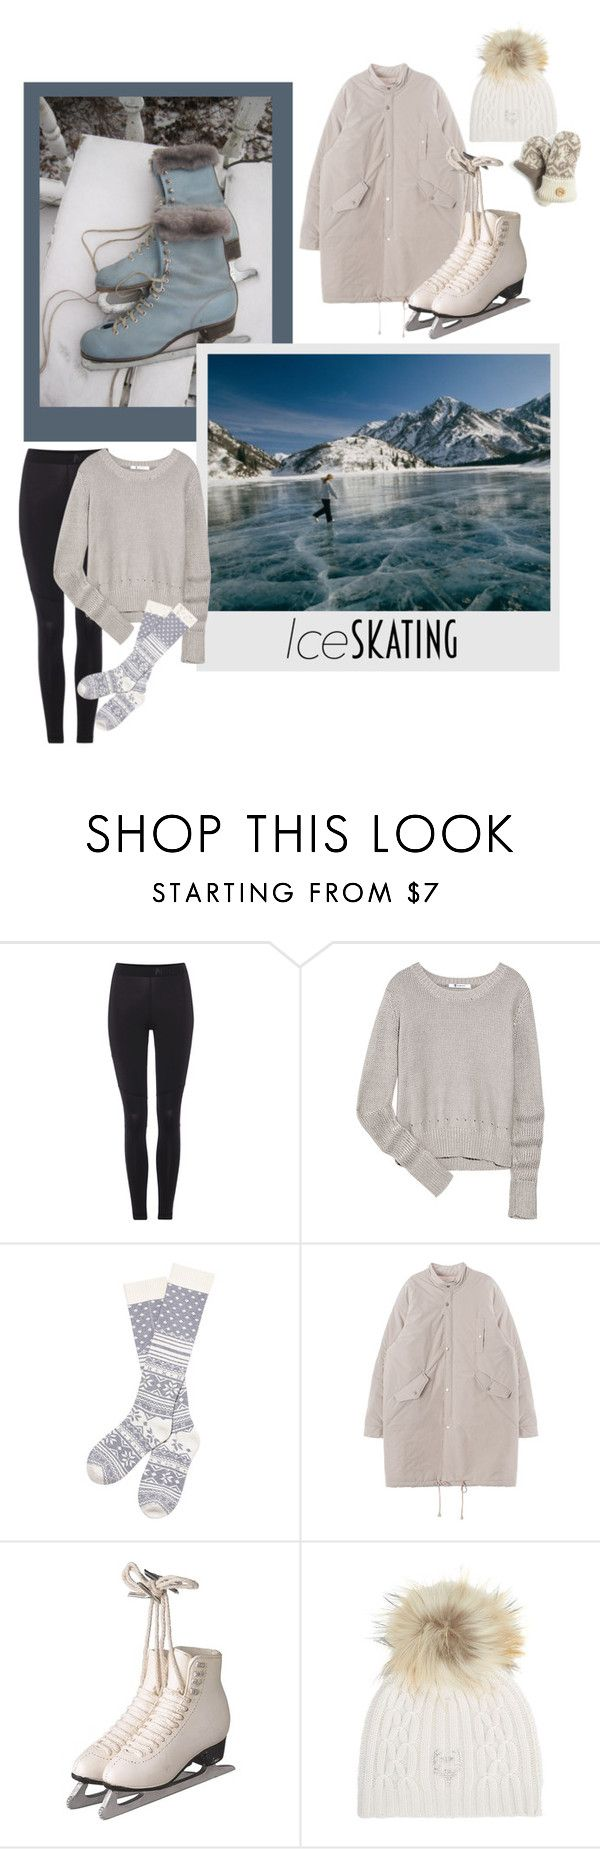 """""""Ice skating"""" by kehargett ❤ liked on Polyvore featuring Disney, NIKE, T By Alexander Wang, Victoria's Secret, M. Miller, Muk Luks, women's clothing, women's fashion, women and female"""